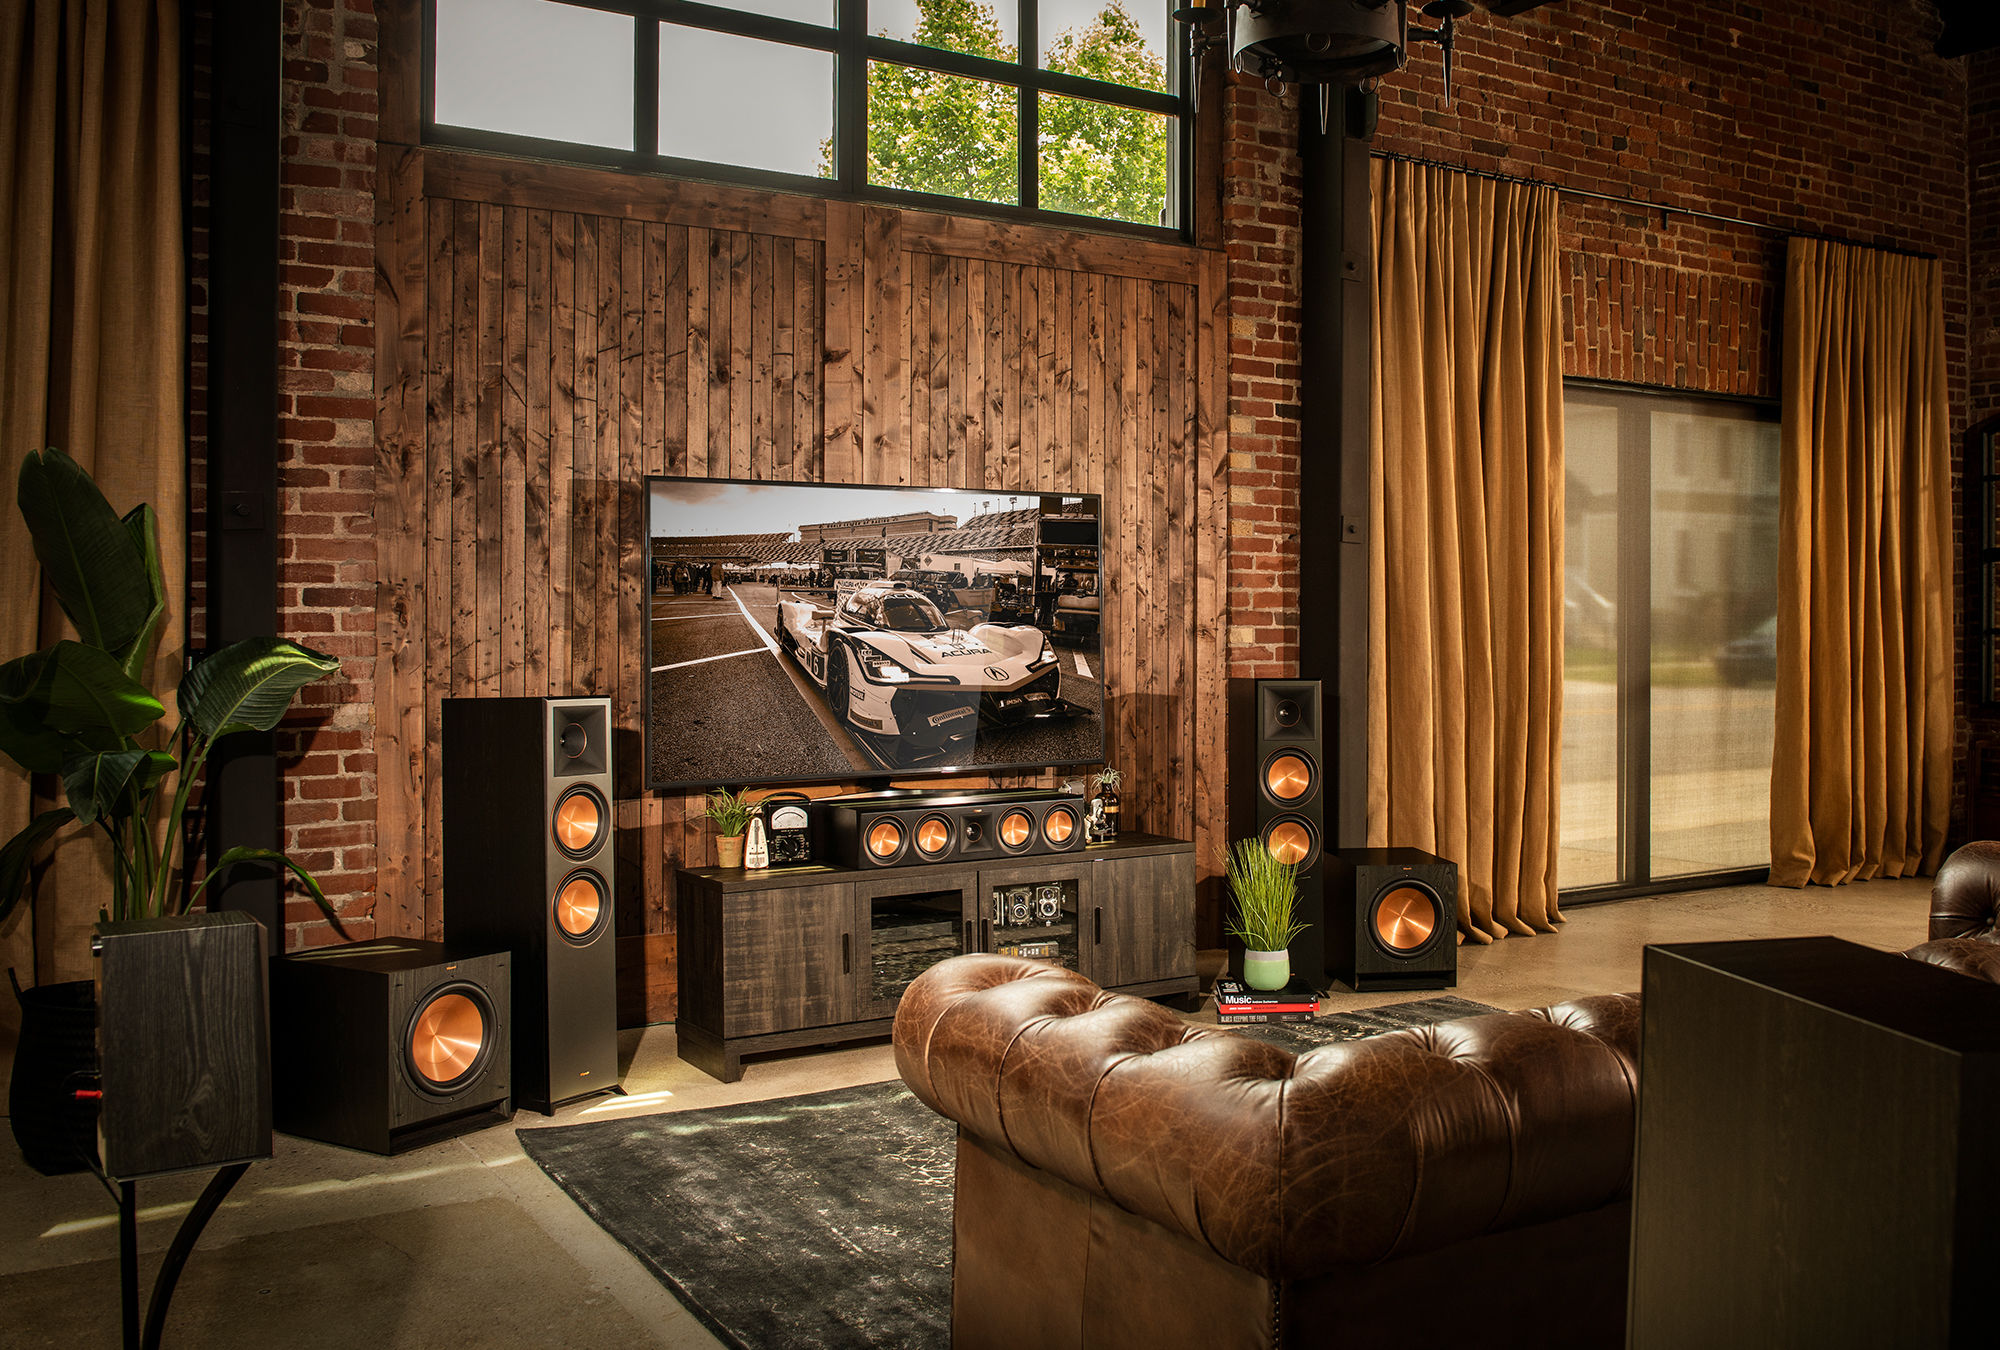 Klipsch speaker system with tv in living room